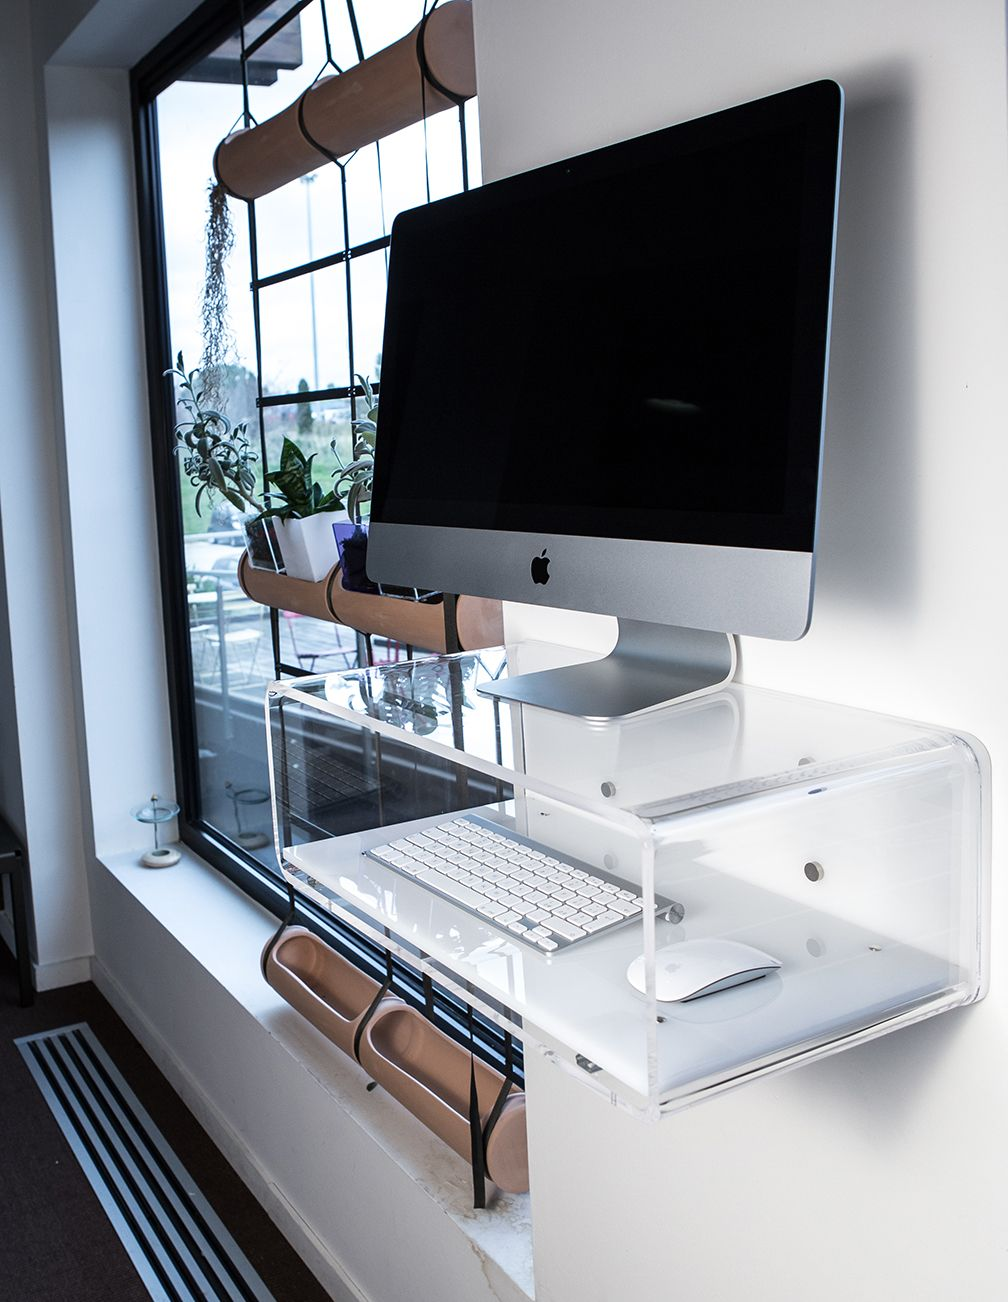 Studio designtrasparente pinterest consoles modern elegant and modern transparent acrylic console for imac and desktop ideal for use with imac geotapseo Gallery